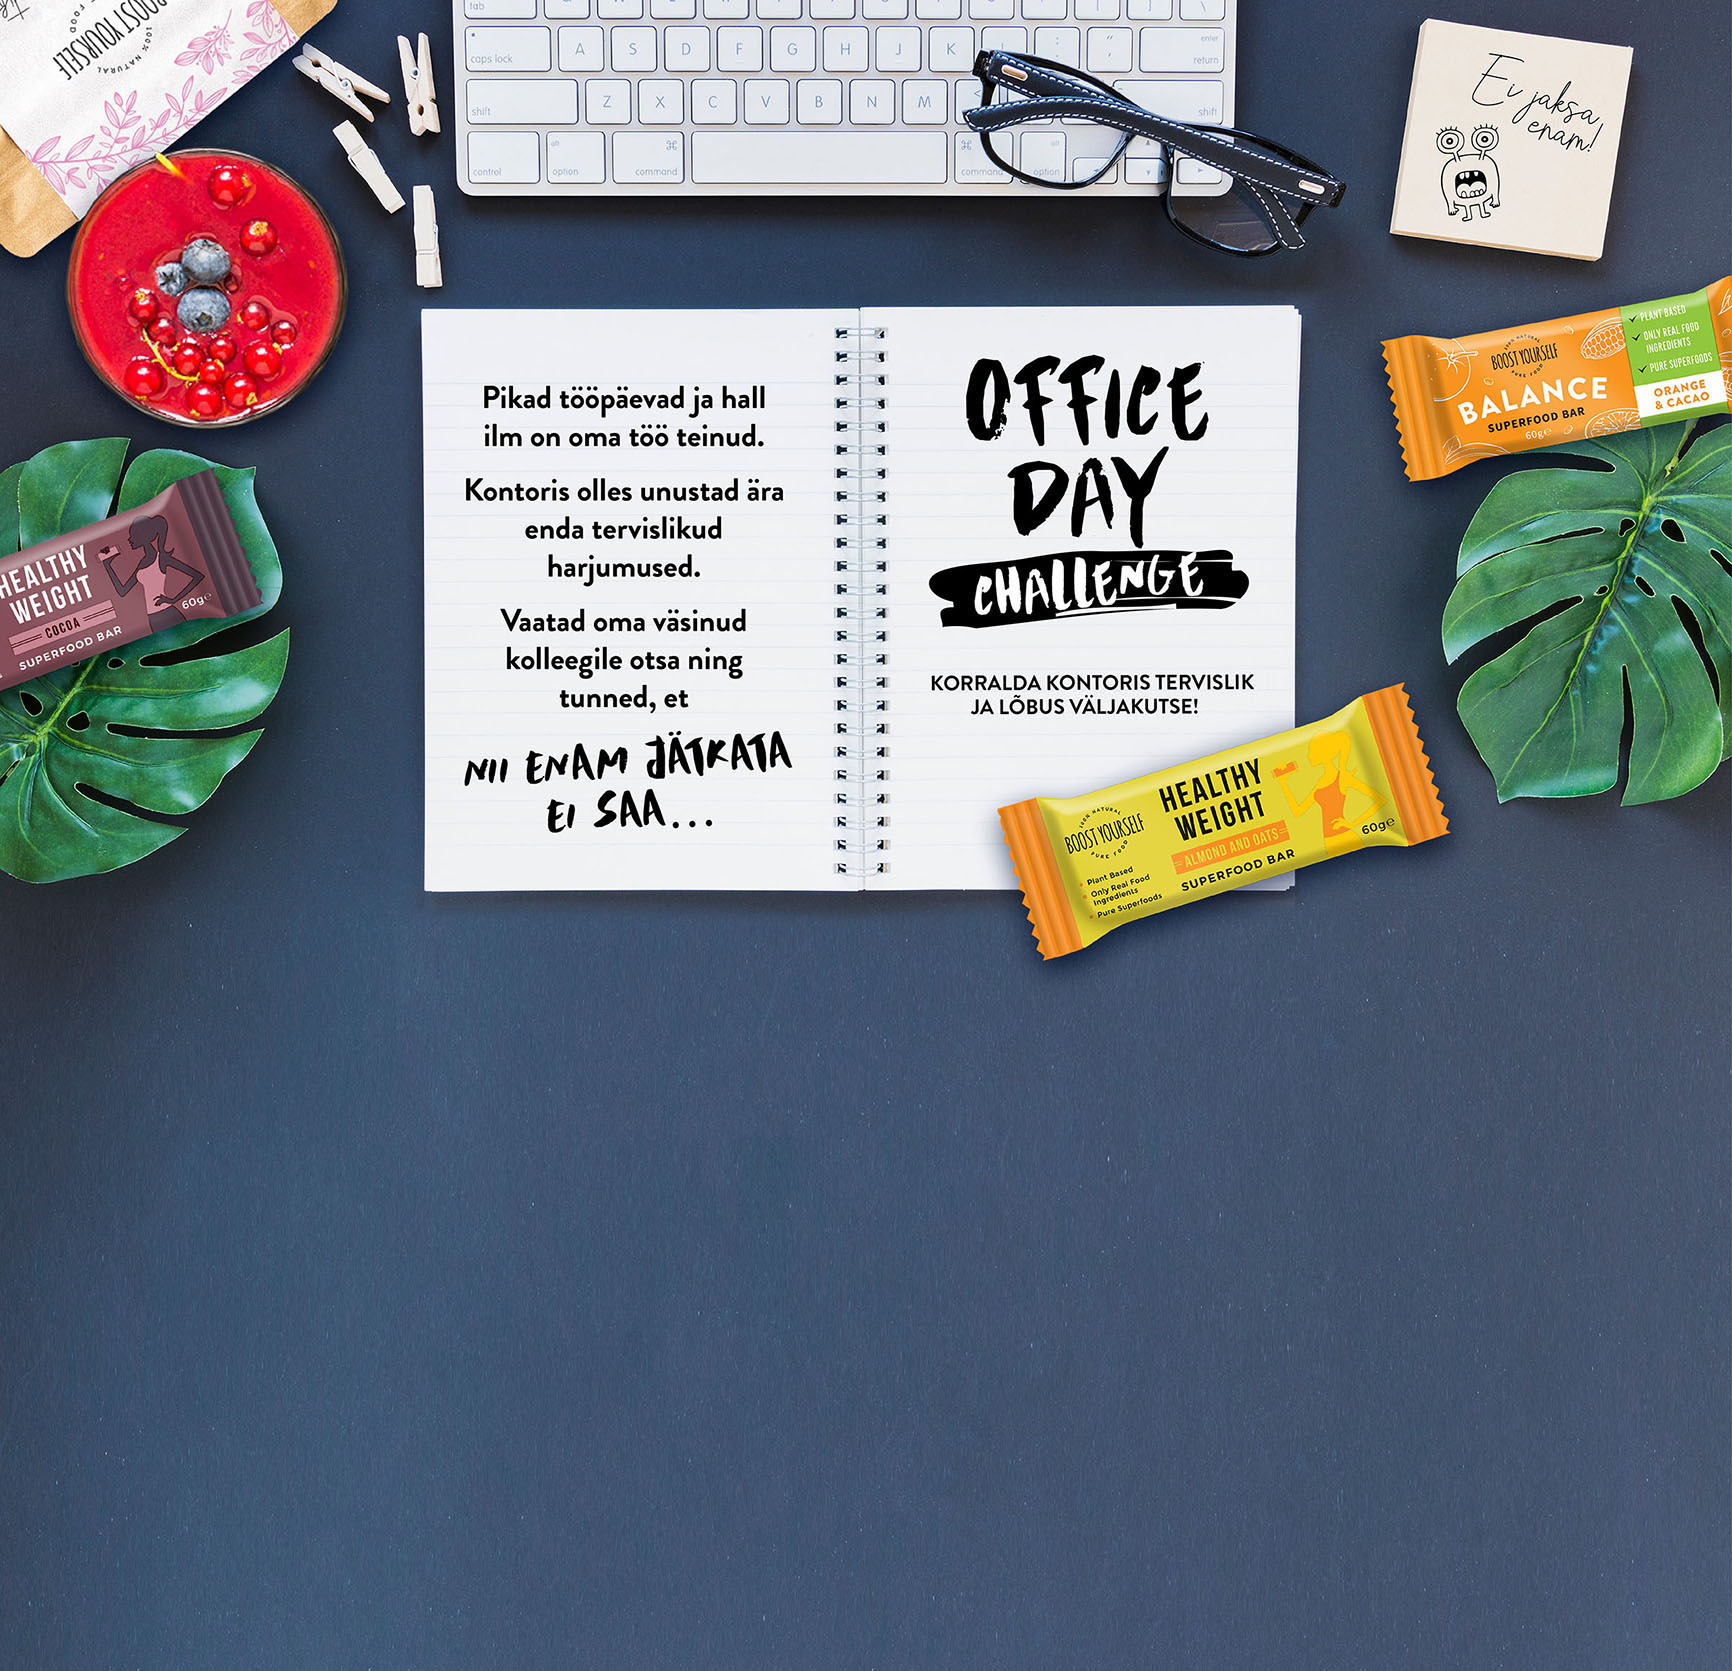 Boost Yourself Office Day Challenge